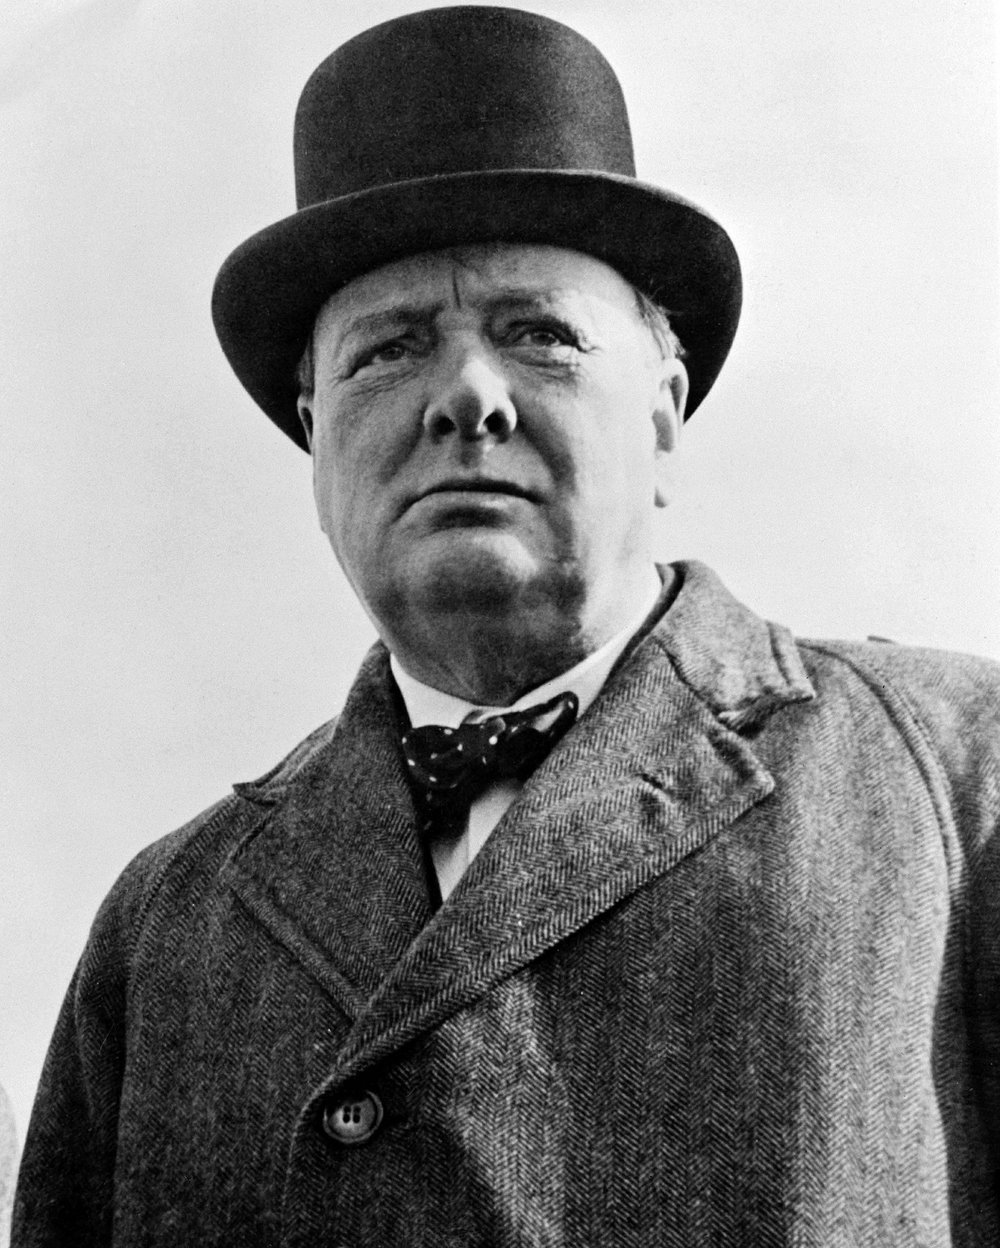 Winston Churchill, the British prime minister during World War II, was able to successfully end the war with a preposition.